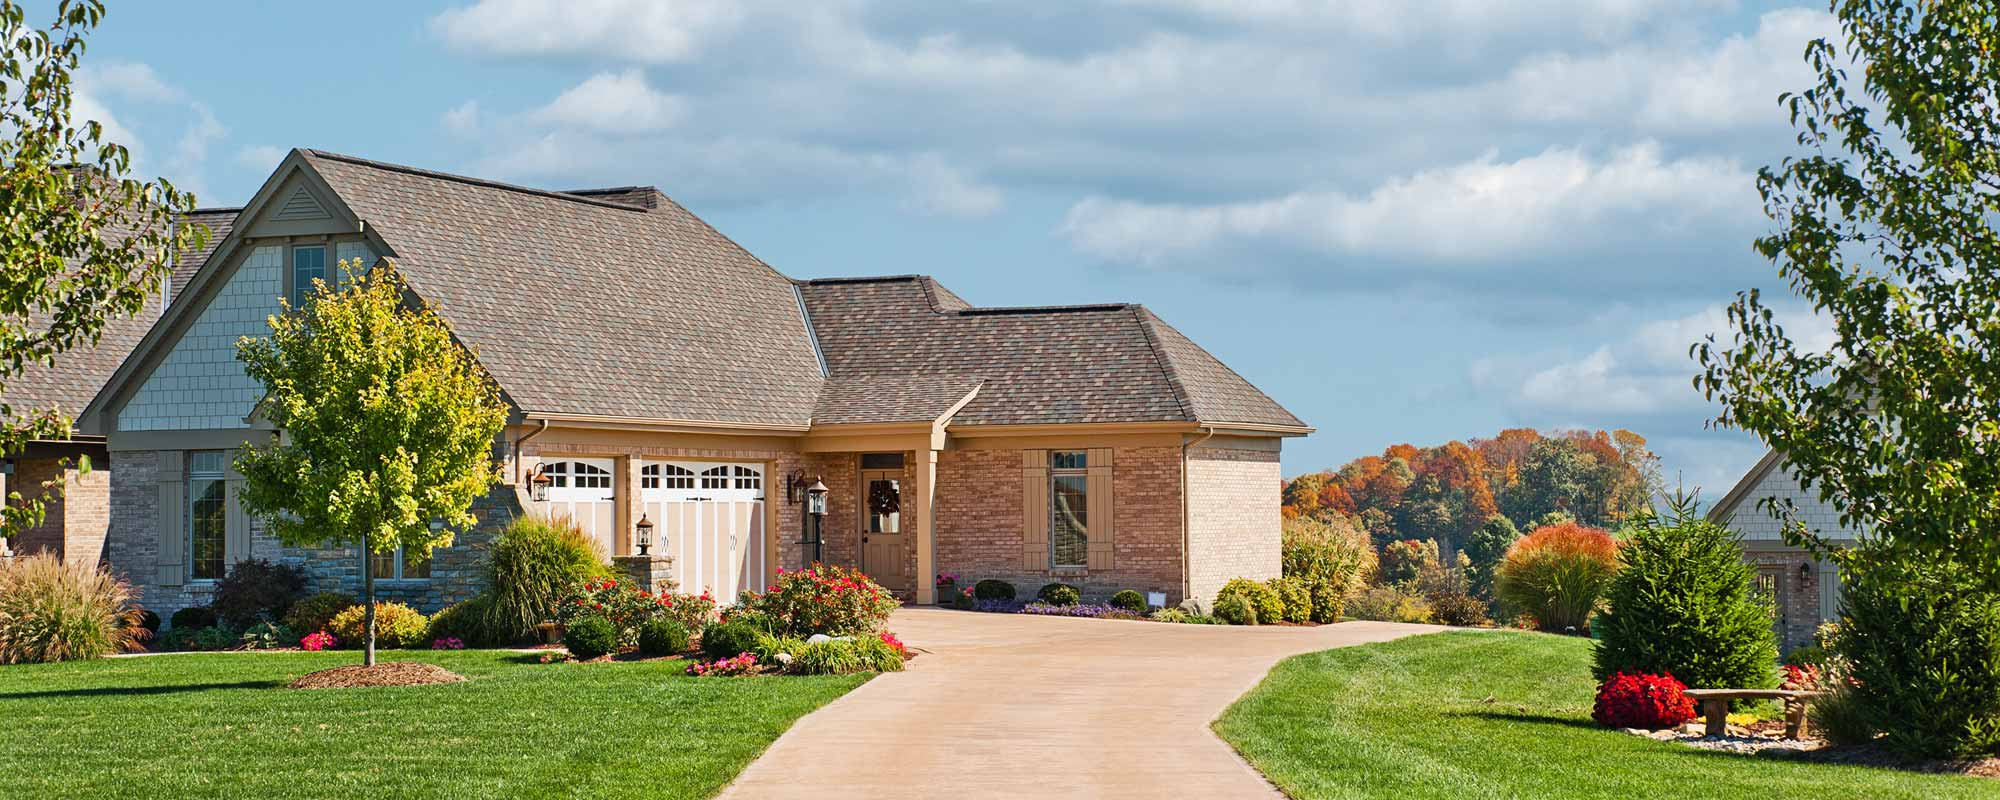 Real estate houses and homes and investment properties for for Dream home search